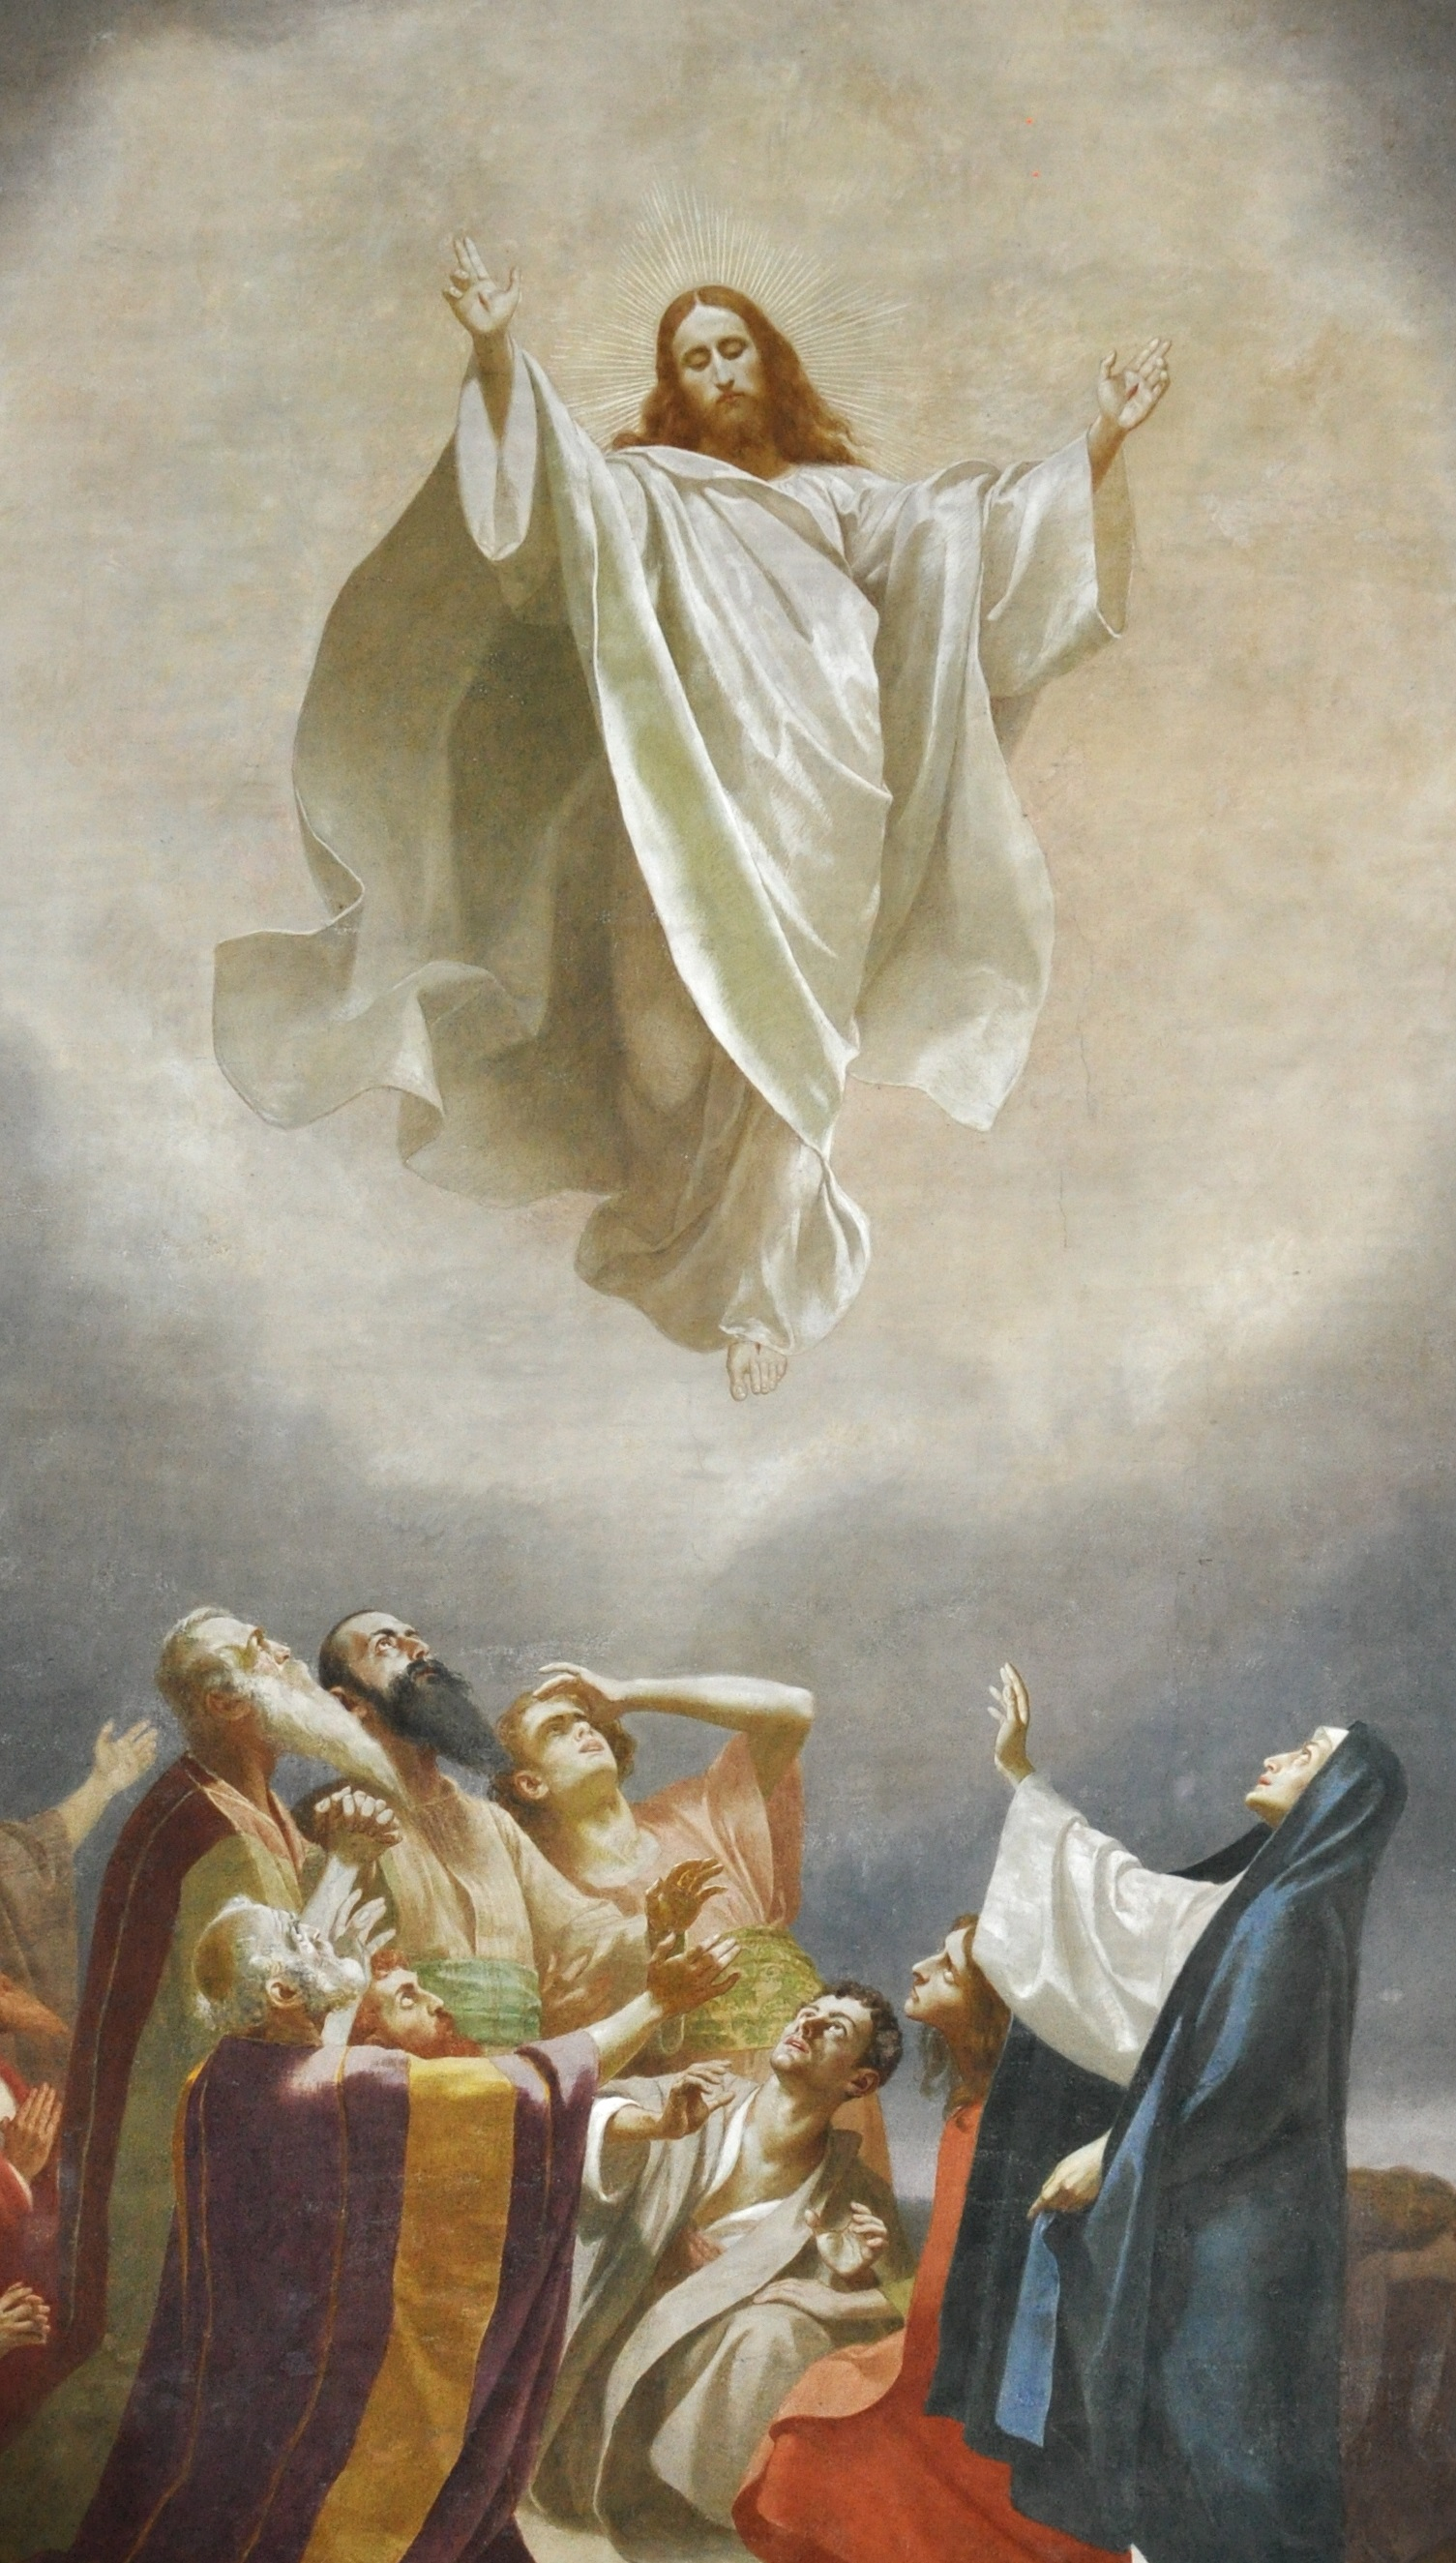 Feast of the Ascension - Wikipedia